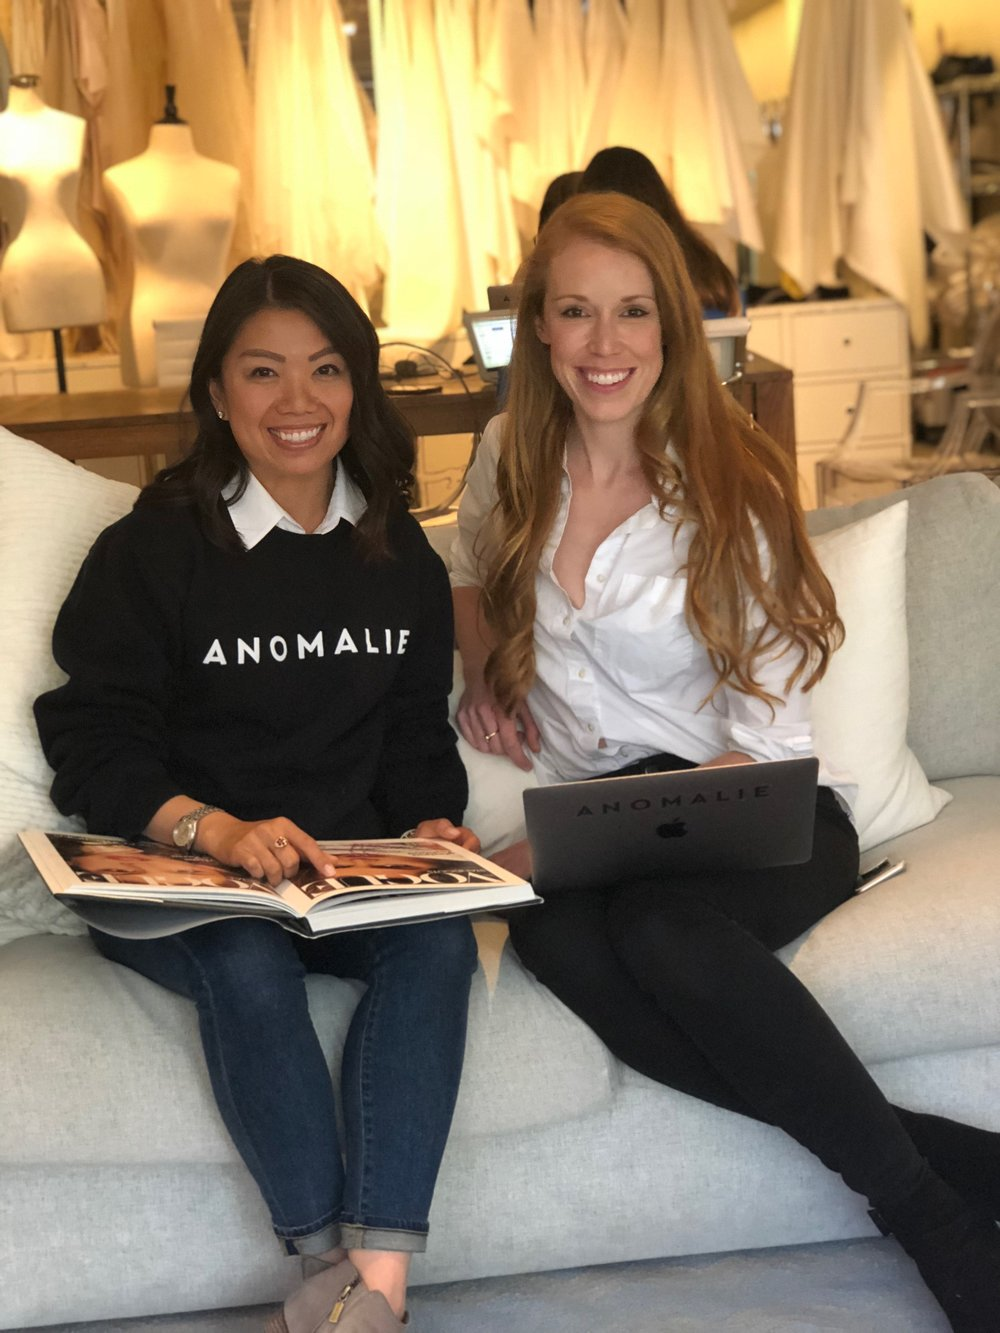 Trish Lee and Leslie Voorhees, CEO and Co-Founder of Anomalie. The company creates custom high-quality wedding dresses through a process that turns brides' inspiration pictures into reality.